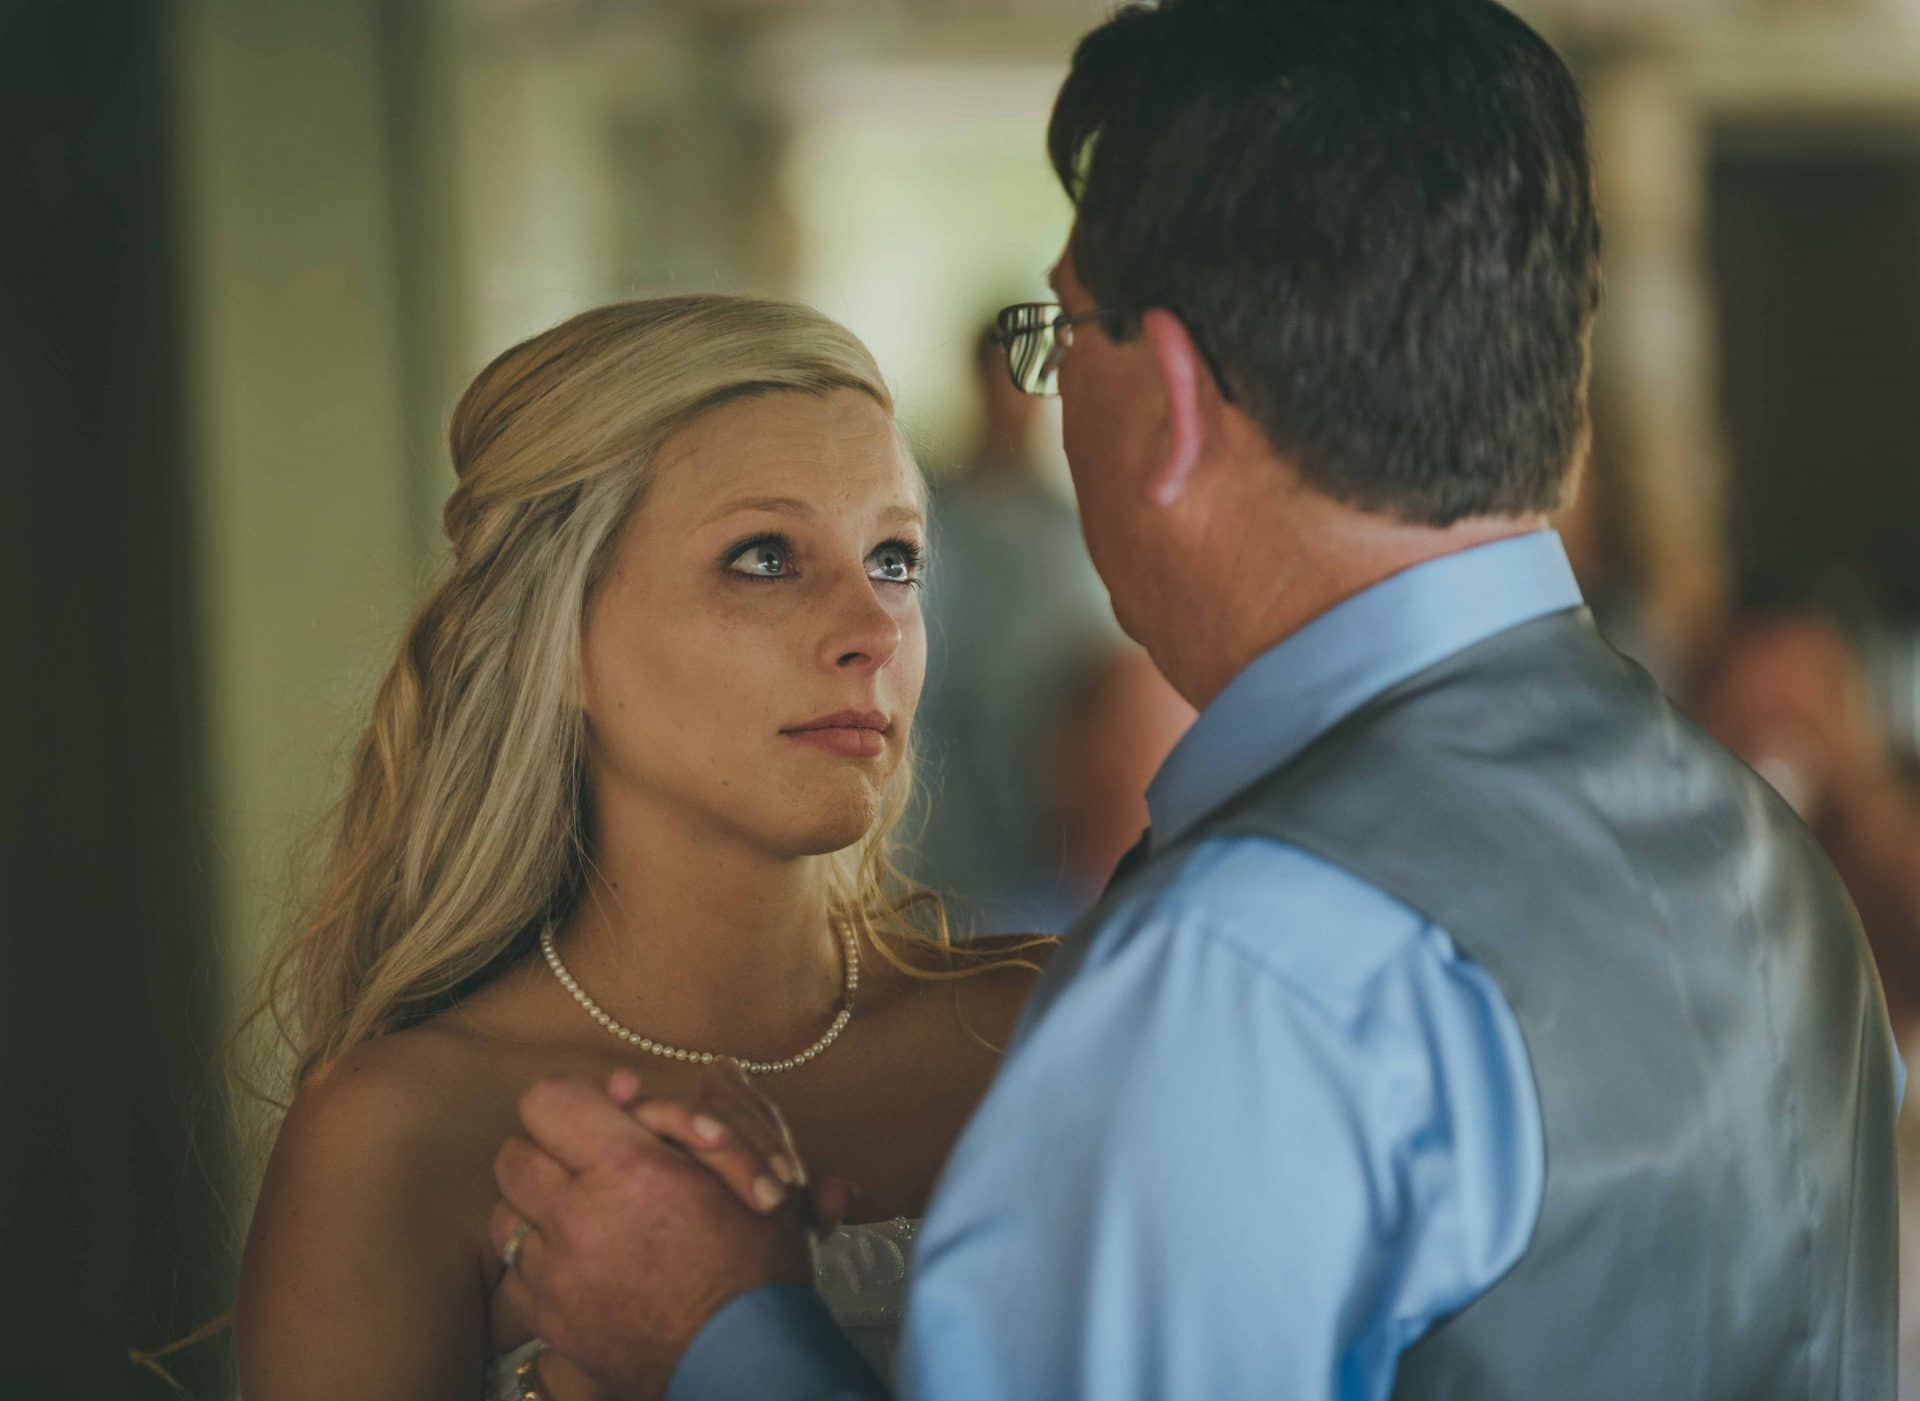 Lake Lure - Wedding - Father daughter dance